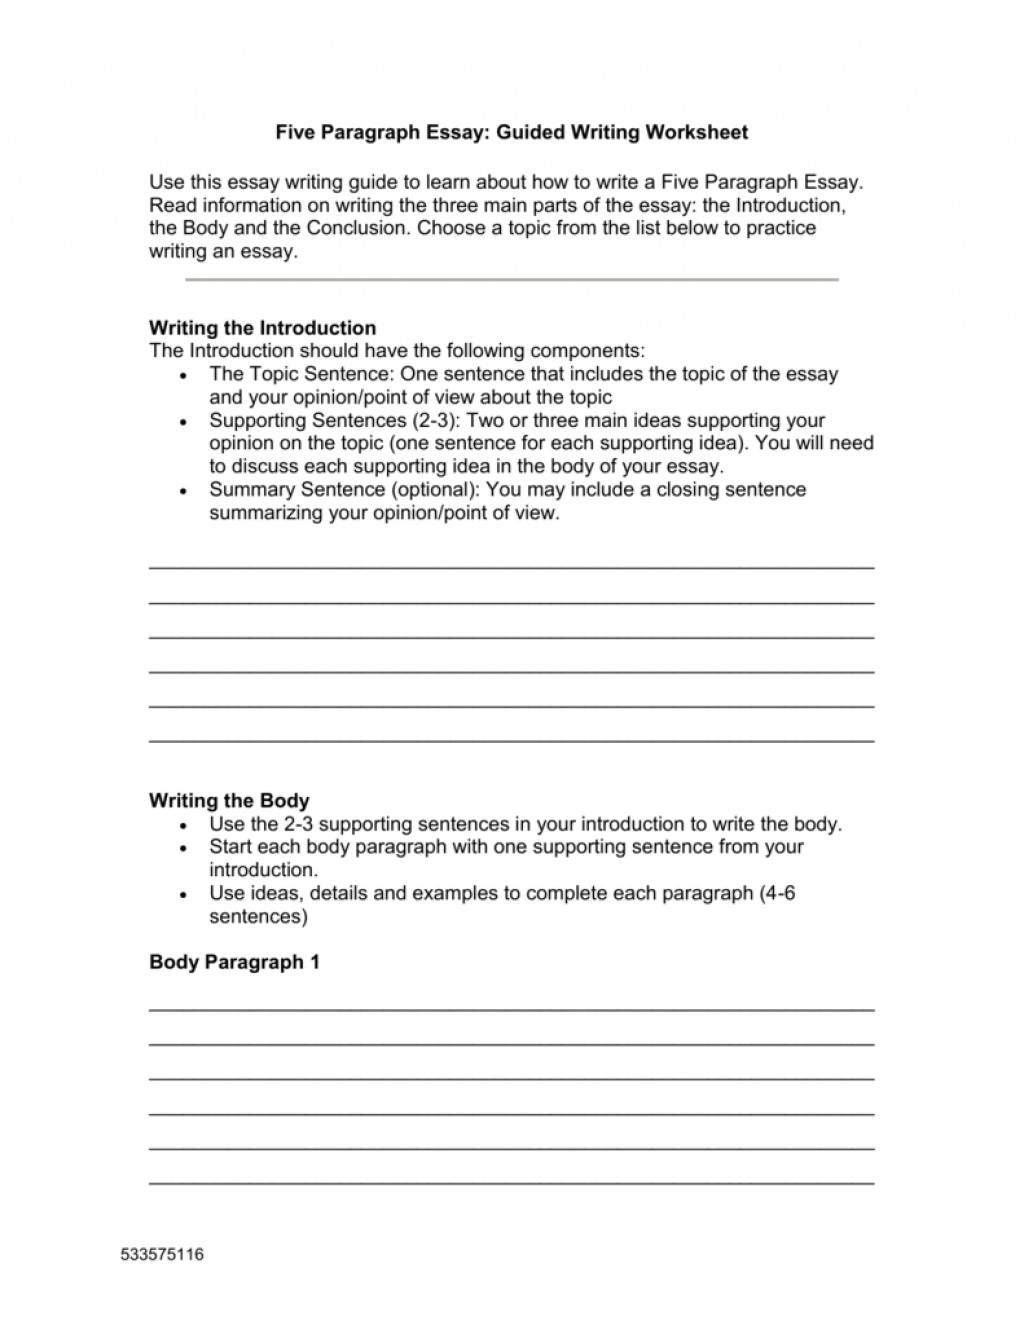 010 Essay Example 008450672 1 One Awesome Paragraph About Dwarfism Topics Large